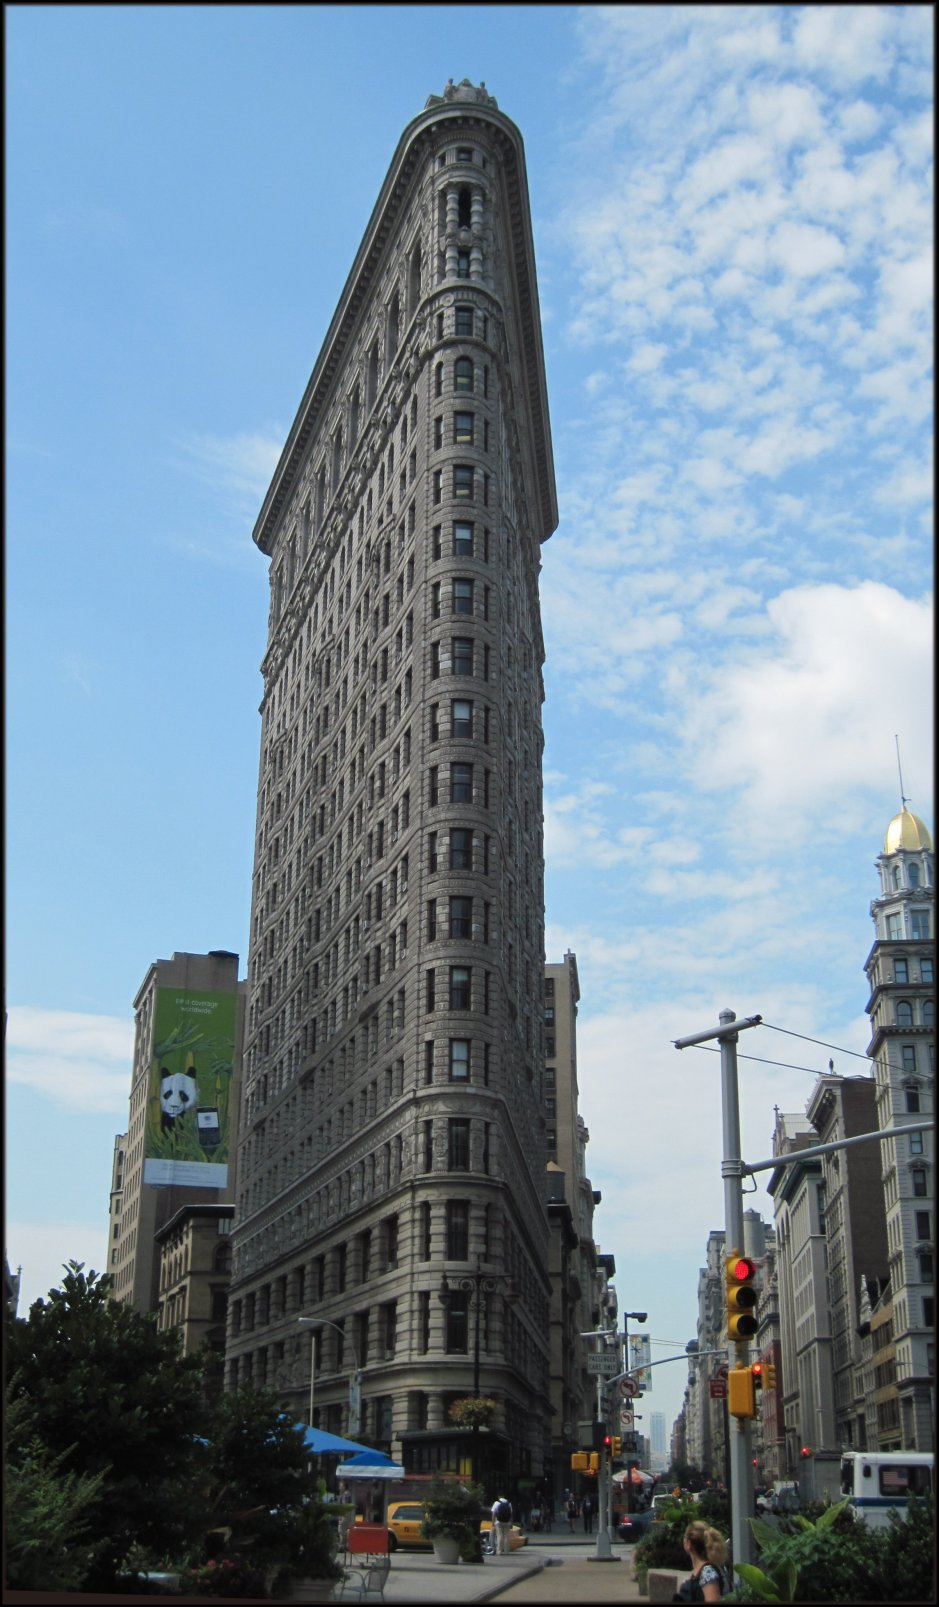 Flatiron Building at 5th Avenue and 23rd St. in Manhattan